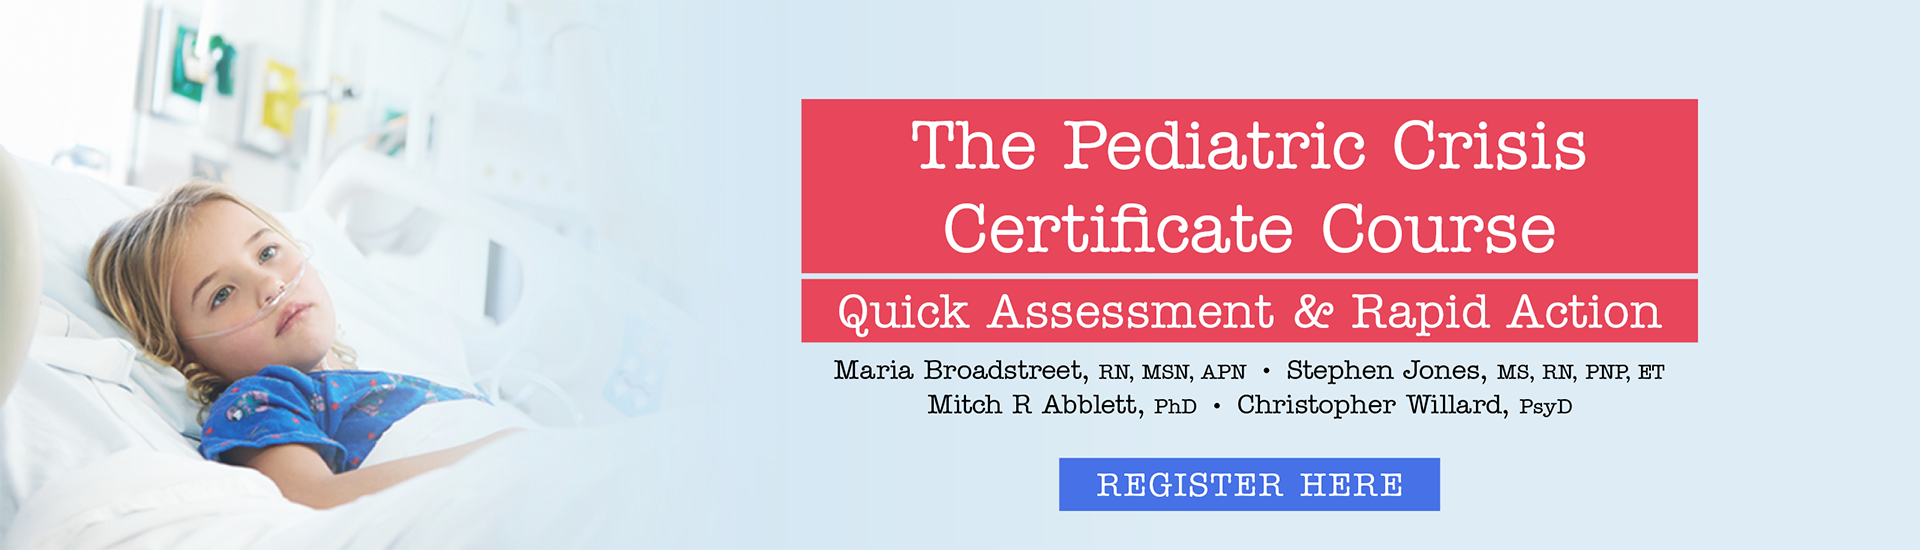 The Pediatric Crisis Certificate Course: Quick Assessment & Rapid Action